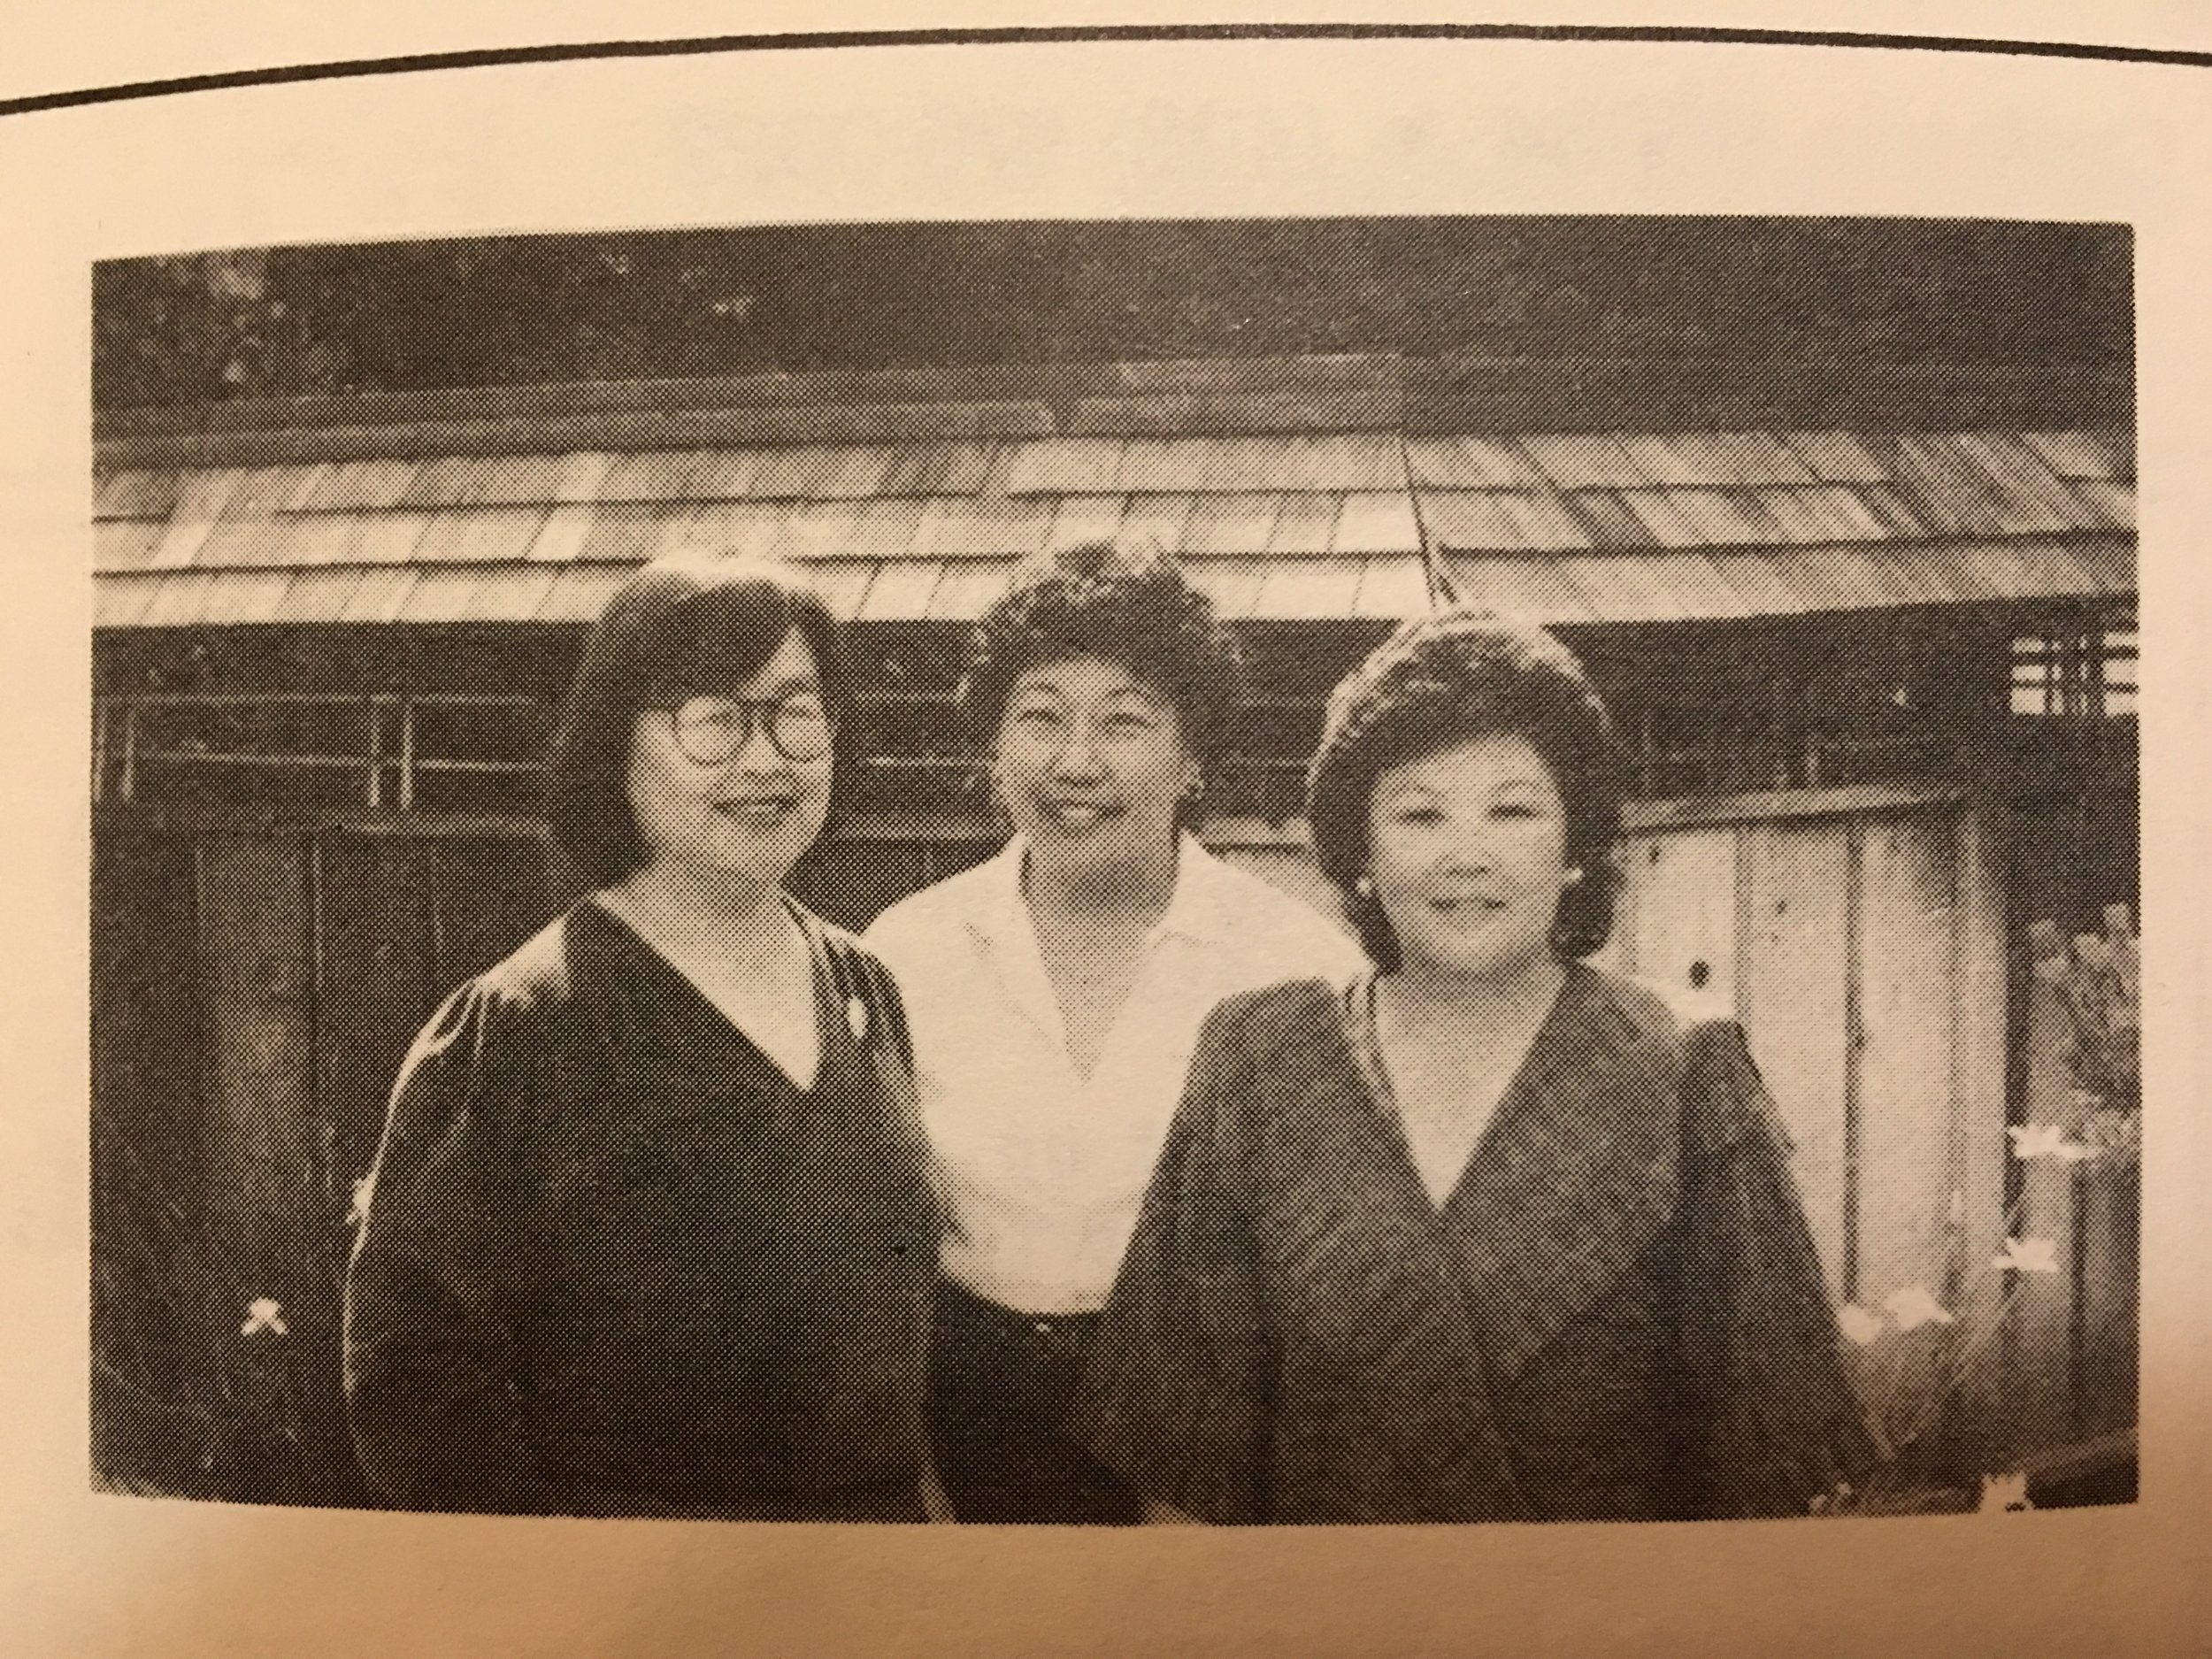 Suzume No Gakko founders (left to right): Karlene Koketsu, Ann Saito, and Karen Akahoshi